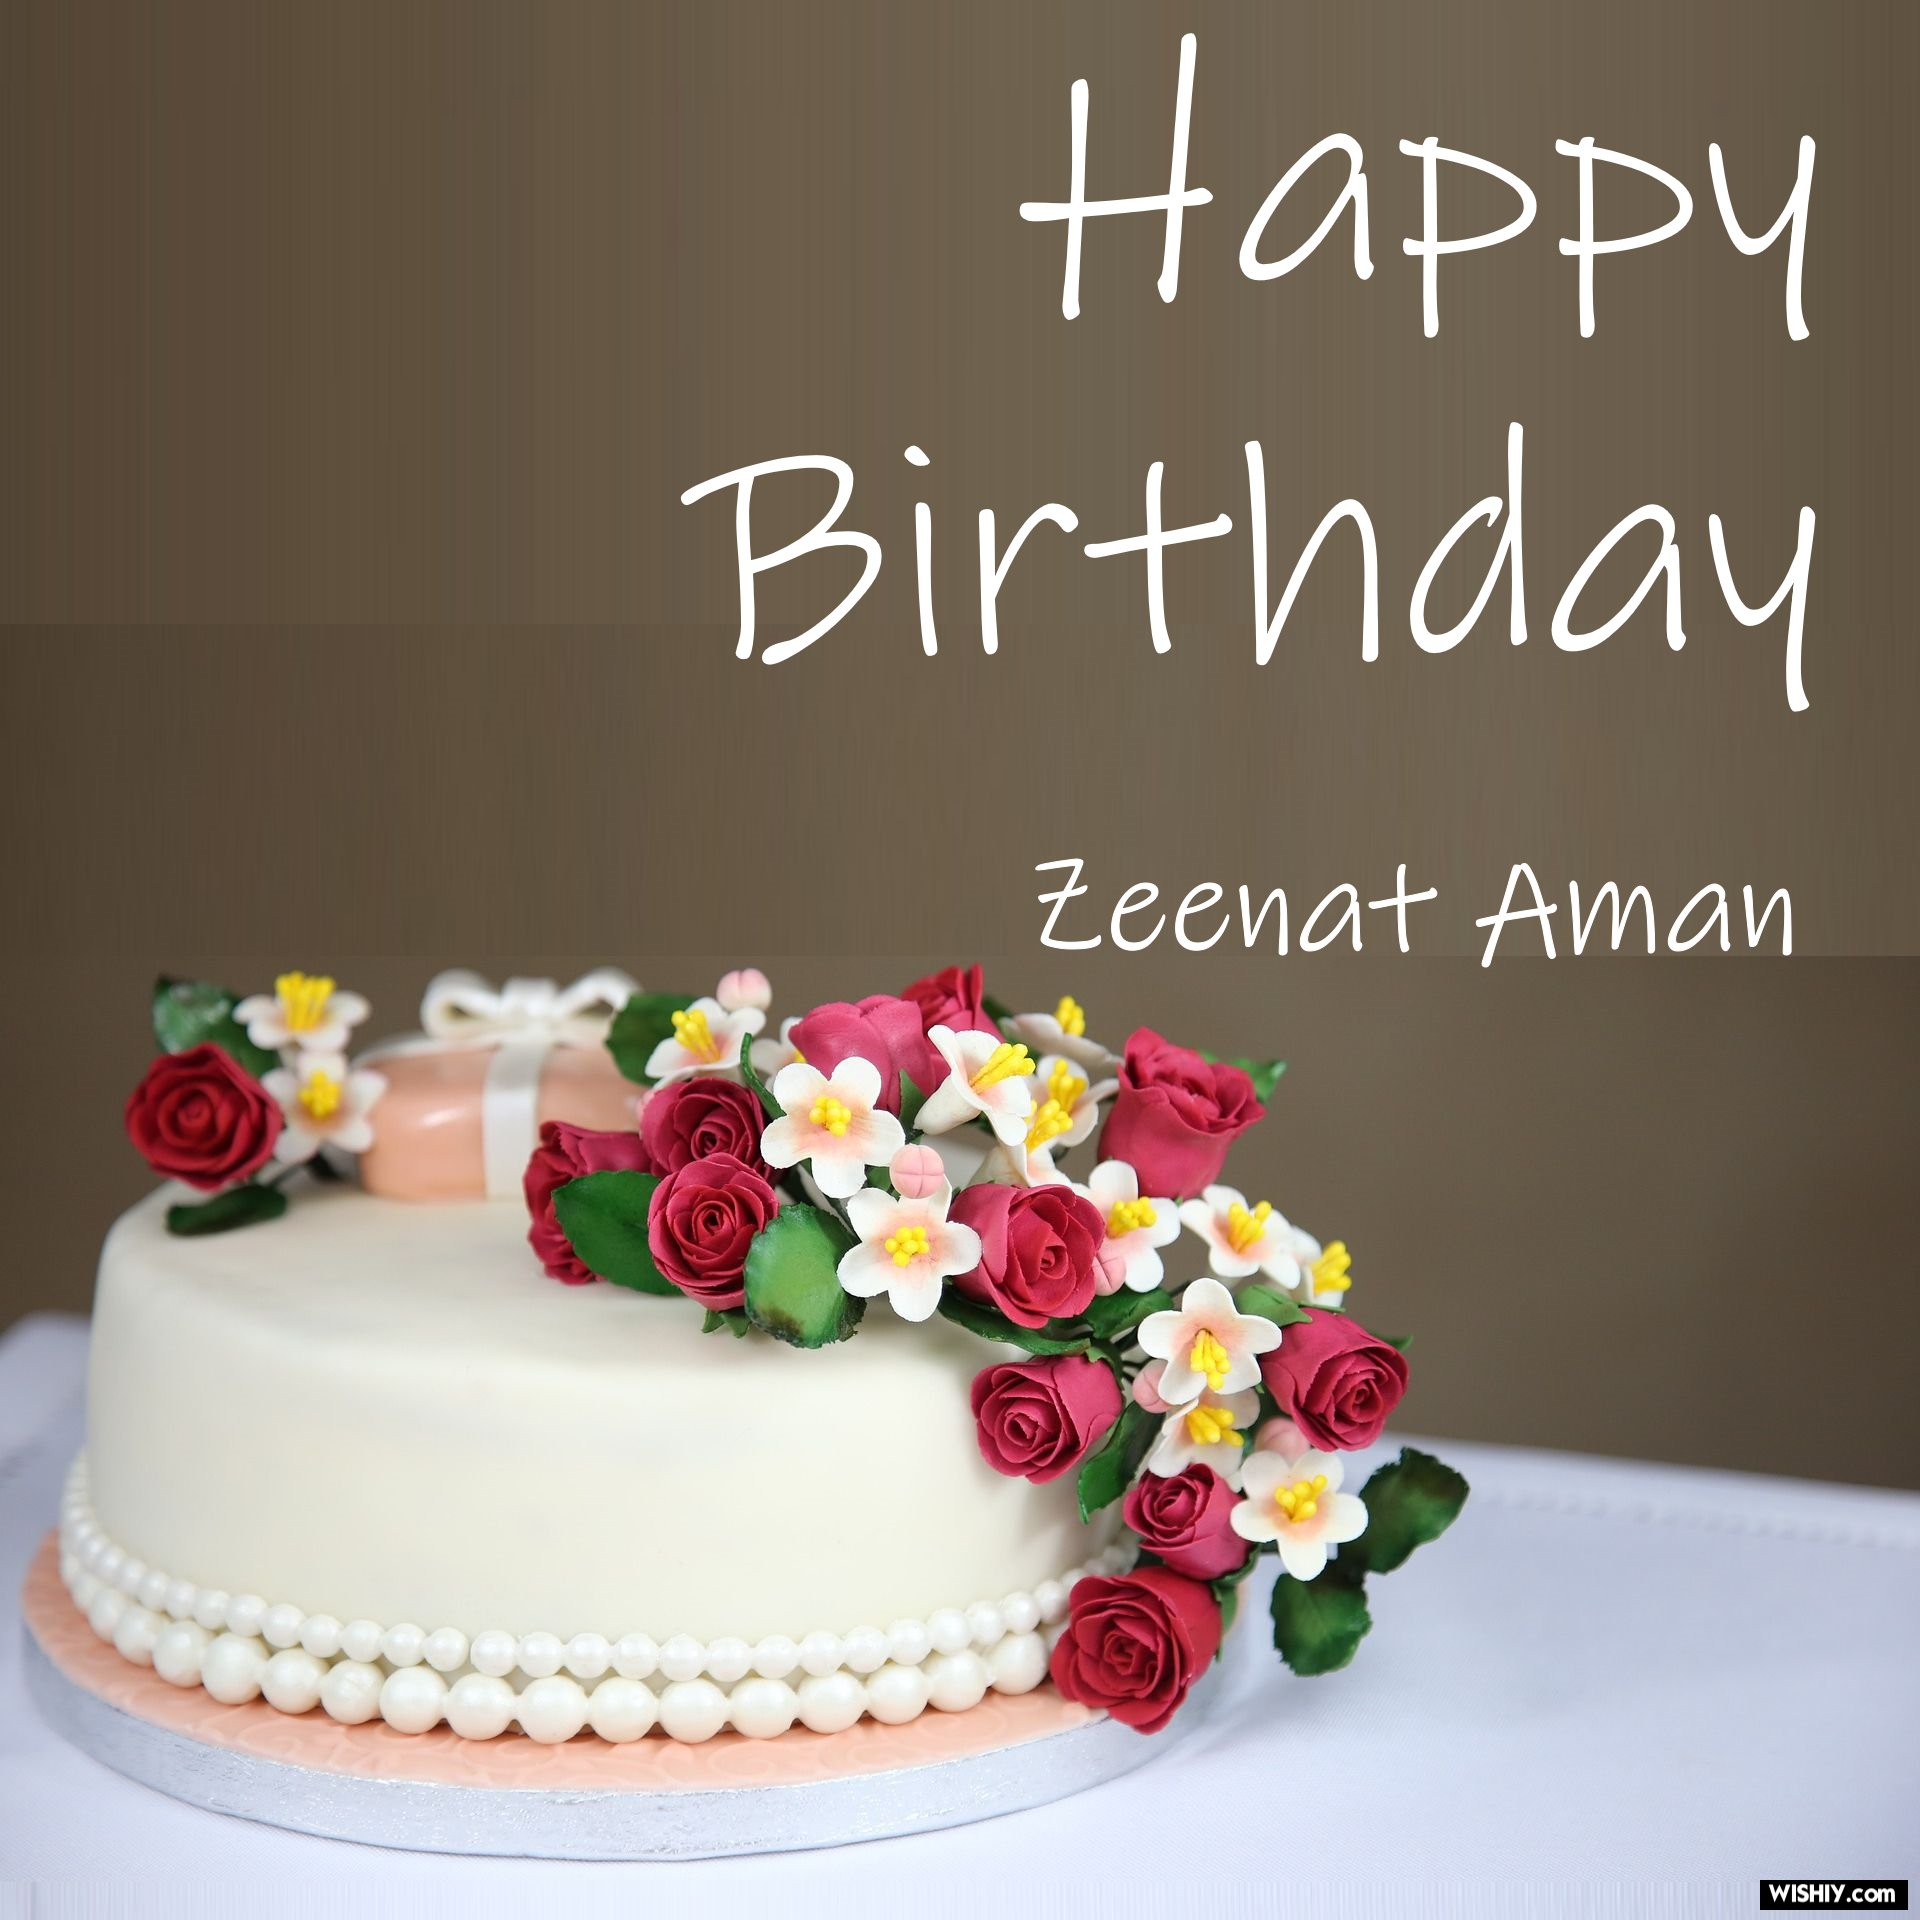 50 Best Birthday Images For Zeenat Aman Instant Download 2021 With tenor, maker of gif keyboard, add popular happy birthday cake animated gifs to your conversations. birthday images for zeenat aman